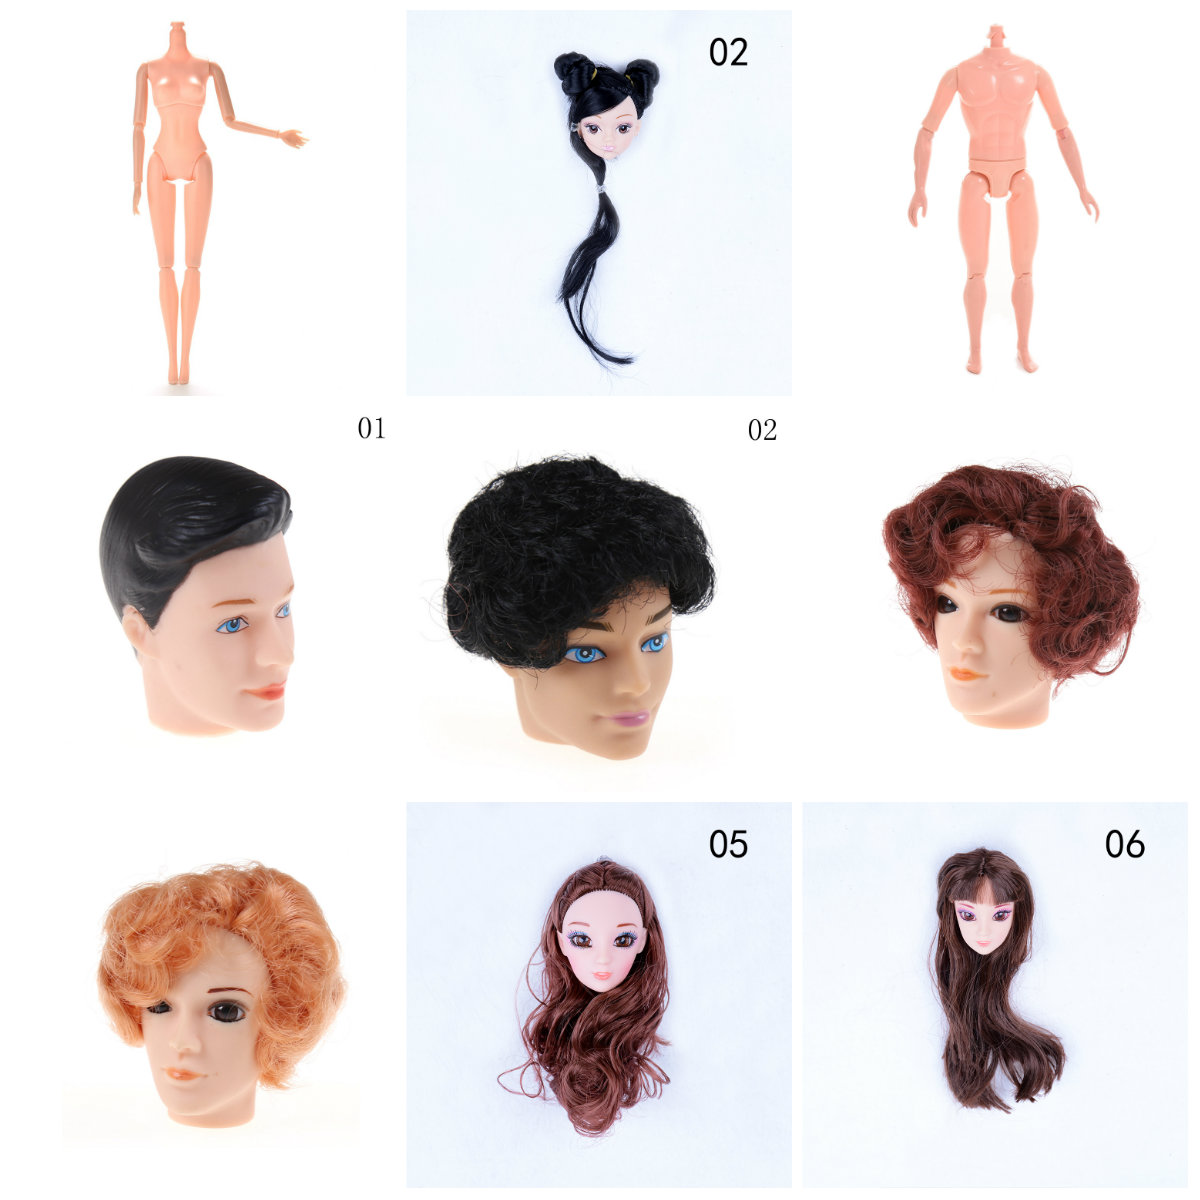 Dolls & Stuffed Toys Professional Sale New Doll Without Head Doll Male Female Naked Body Necessary For Diy All Joints Moveable Body Toy Doll Head With Hair For Doll Toys & Hobbies